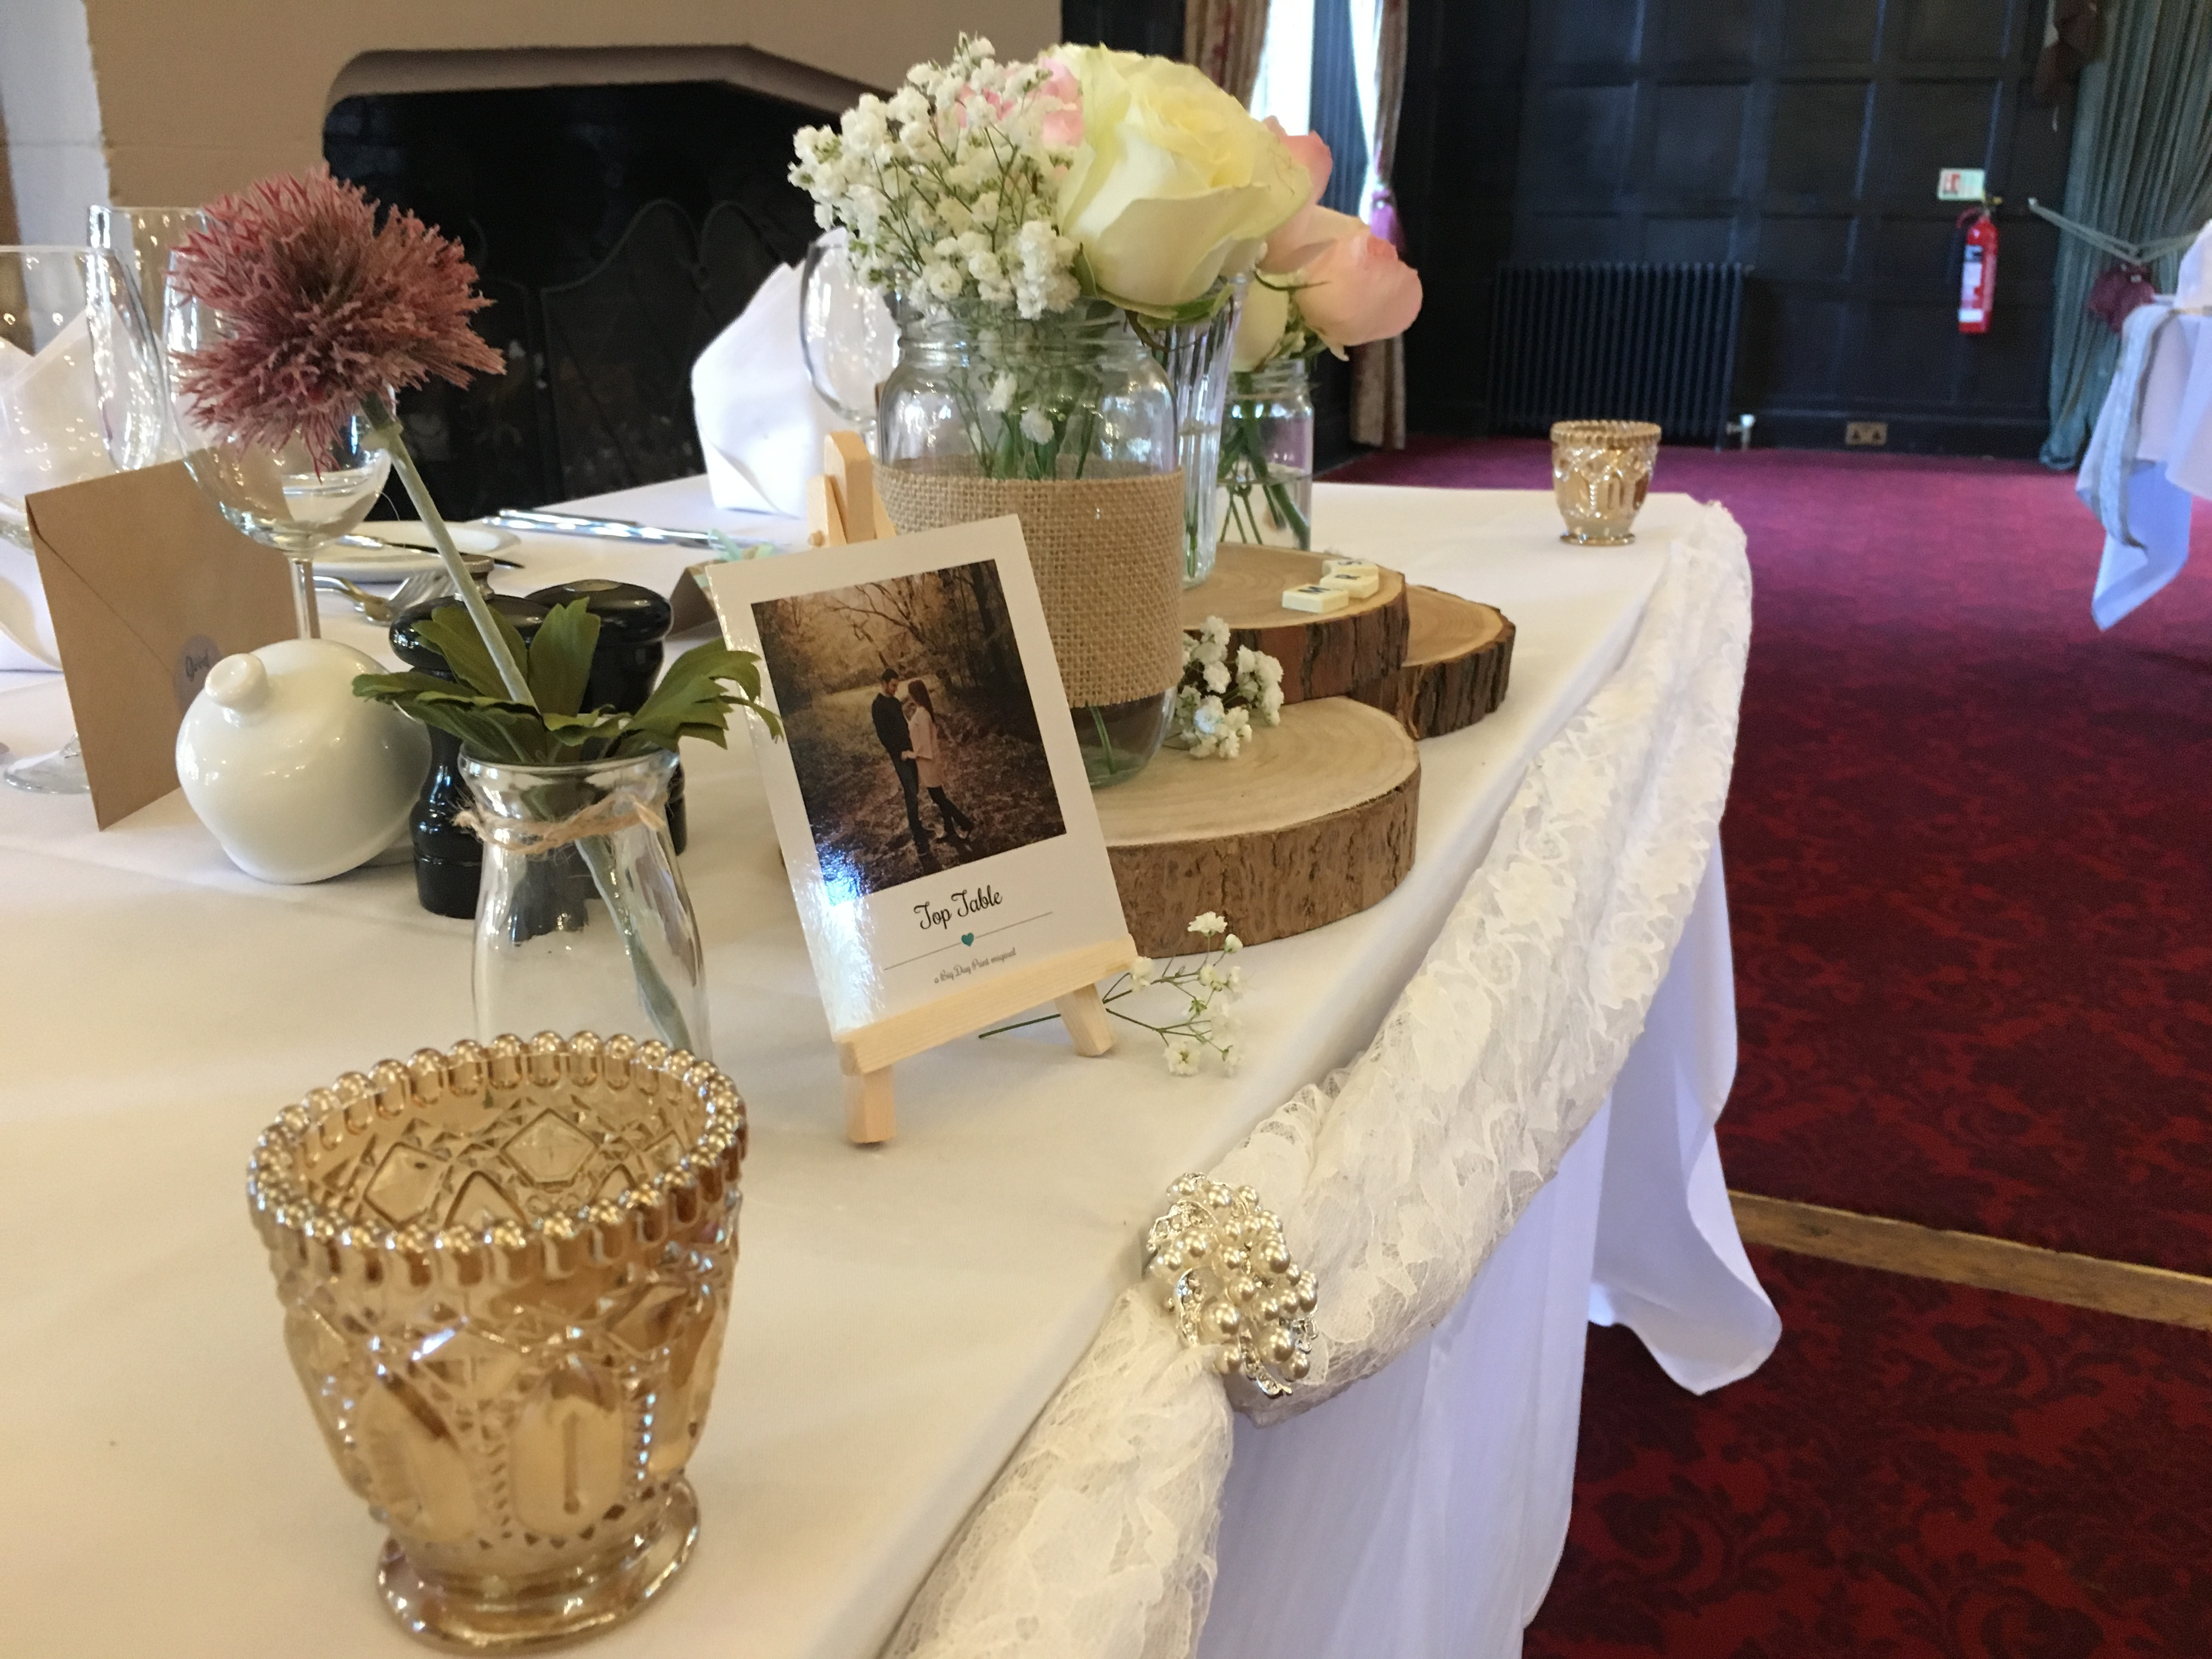 Rustic Logs Top Table with Lace Swag Sophia's Final Touch - Venue Styling - Weddings